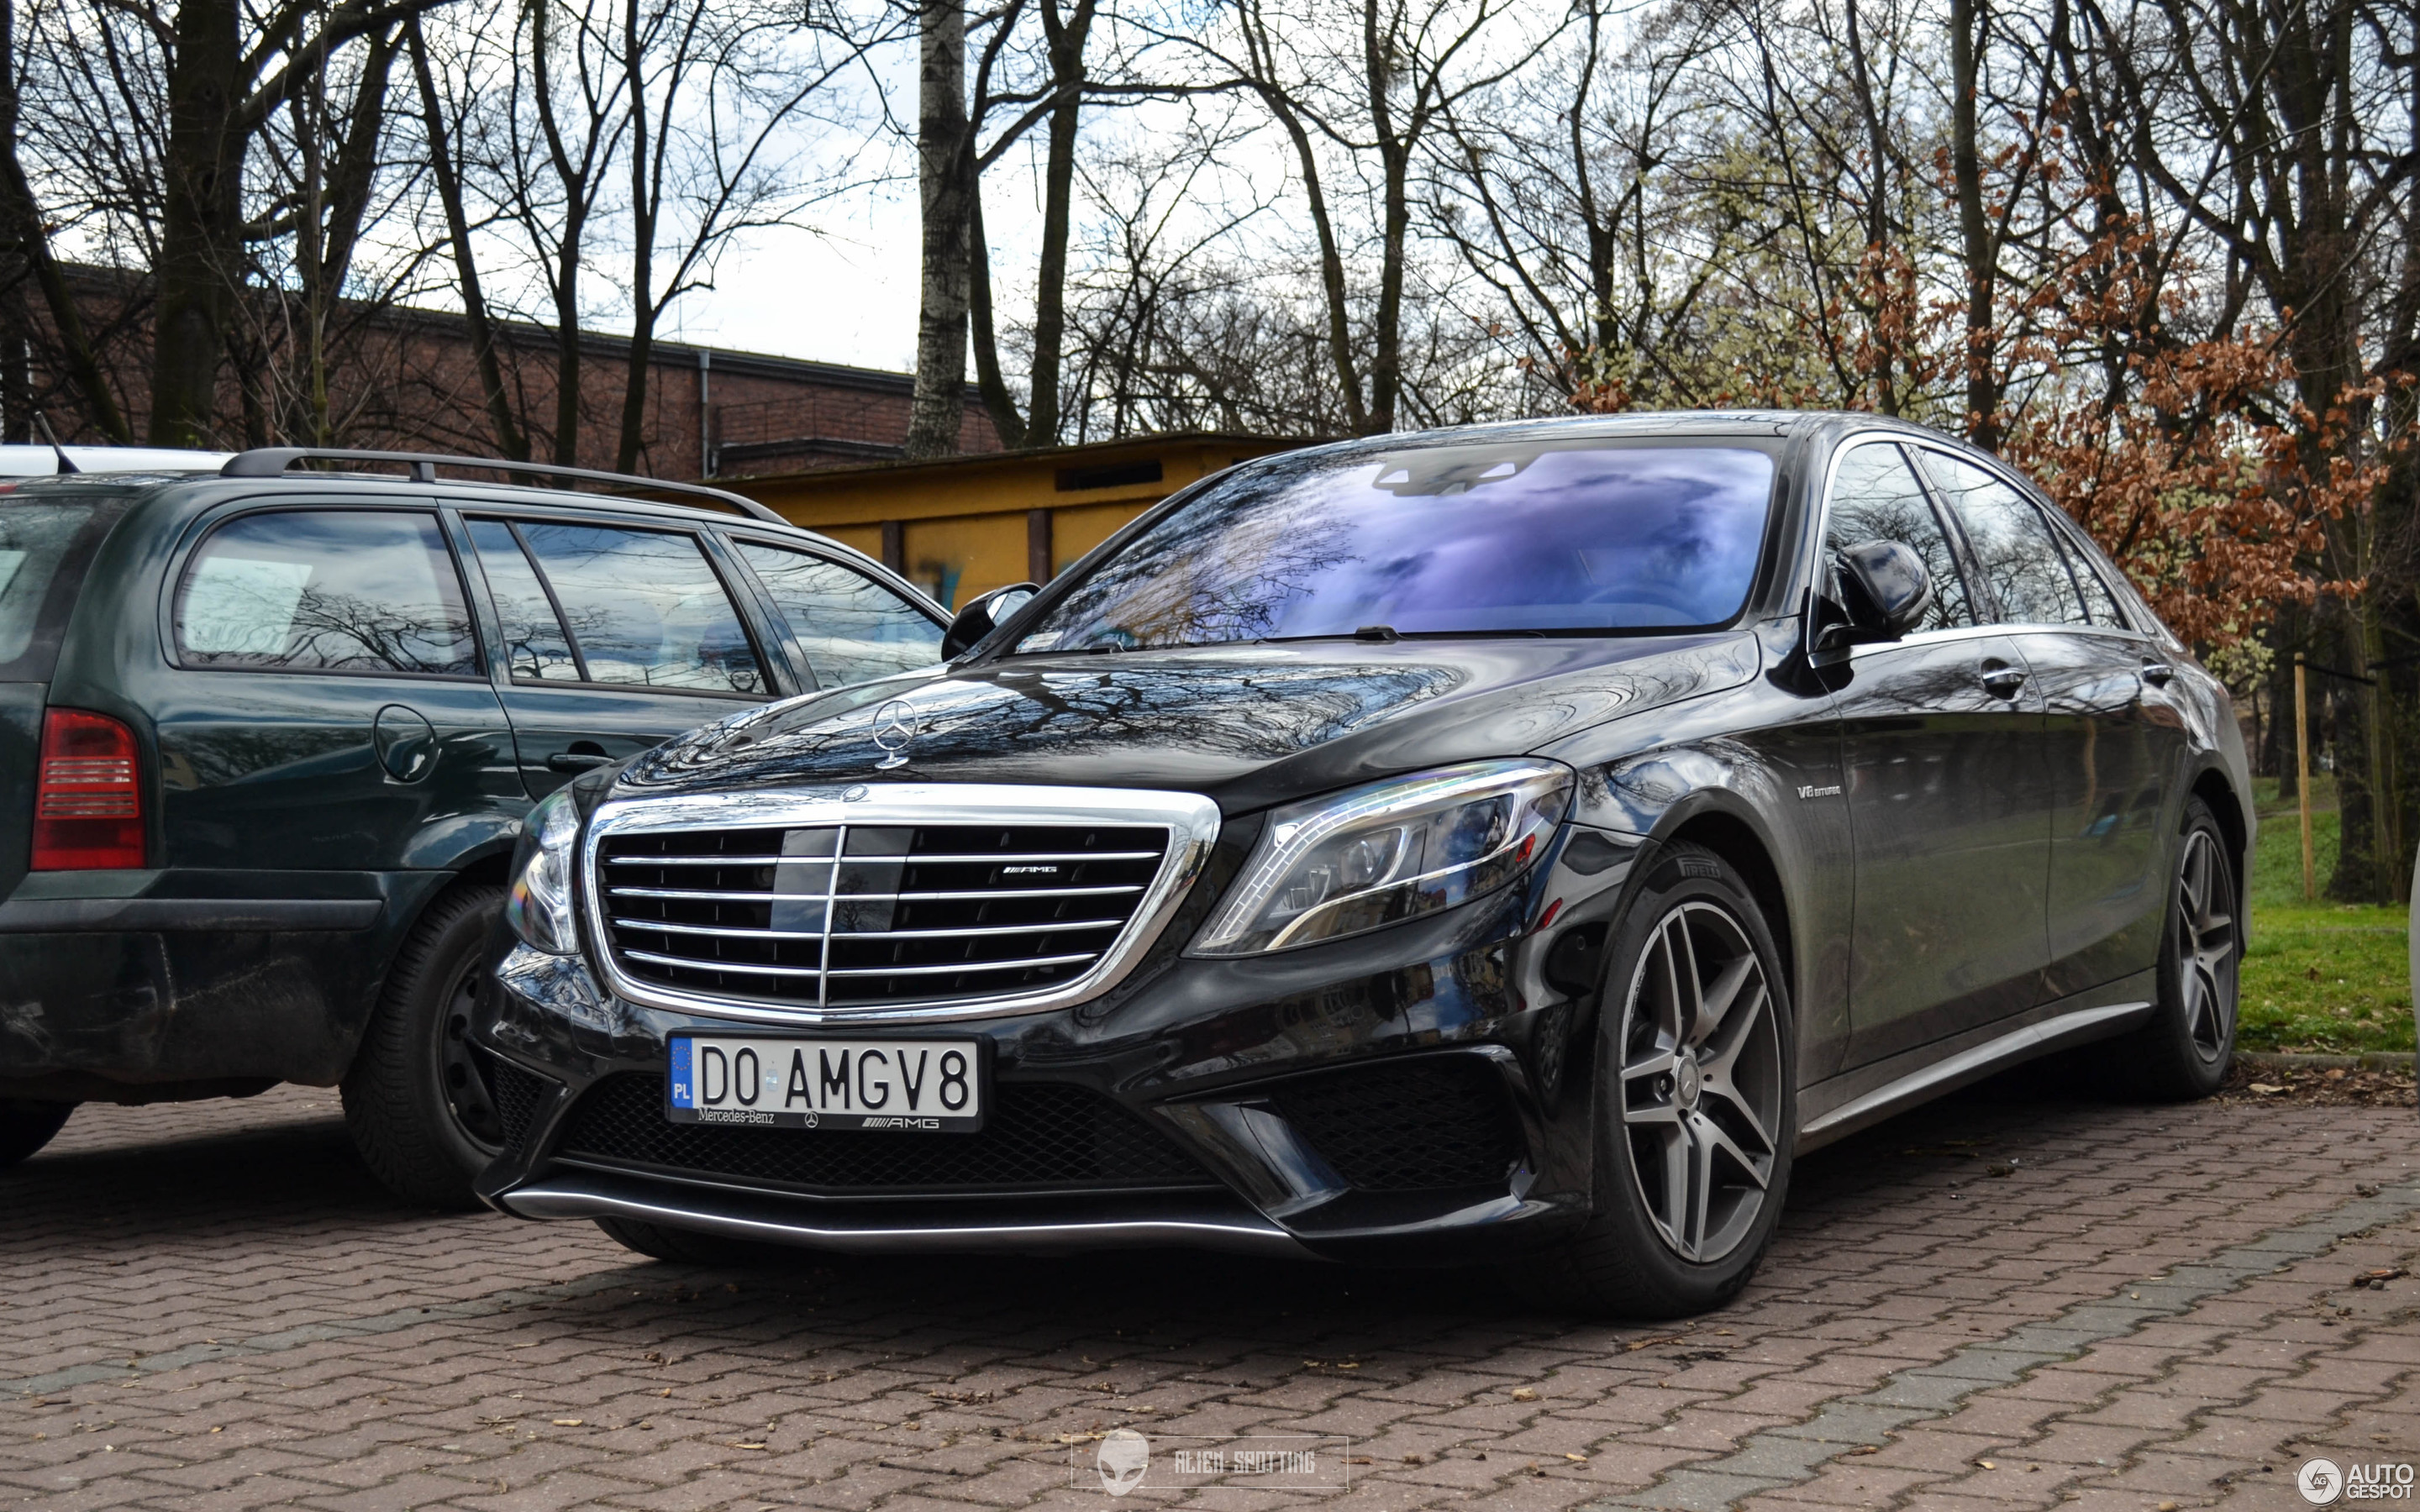 2880-1800-crop-mercedes-benz-s-63-amg-w2